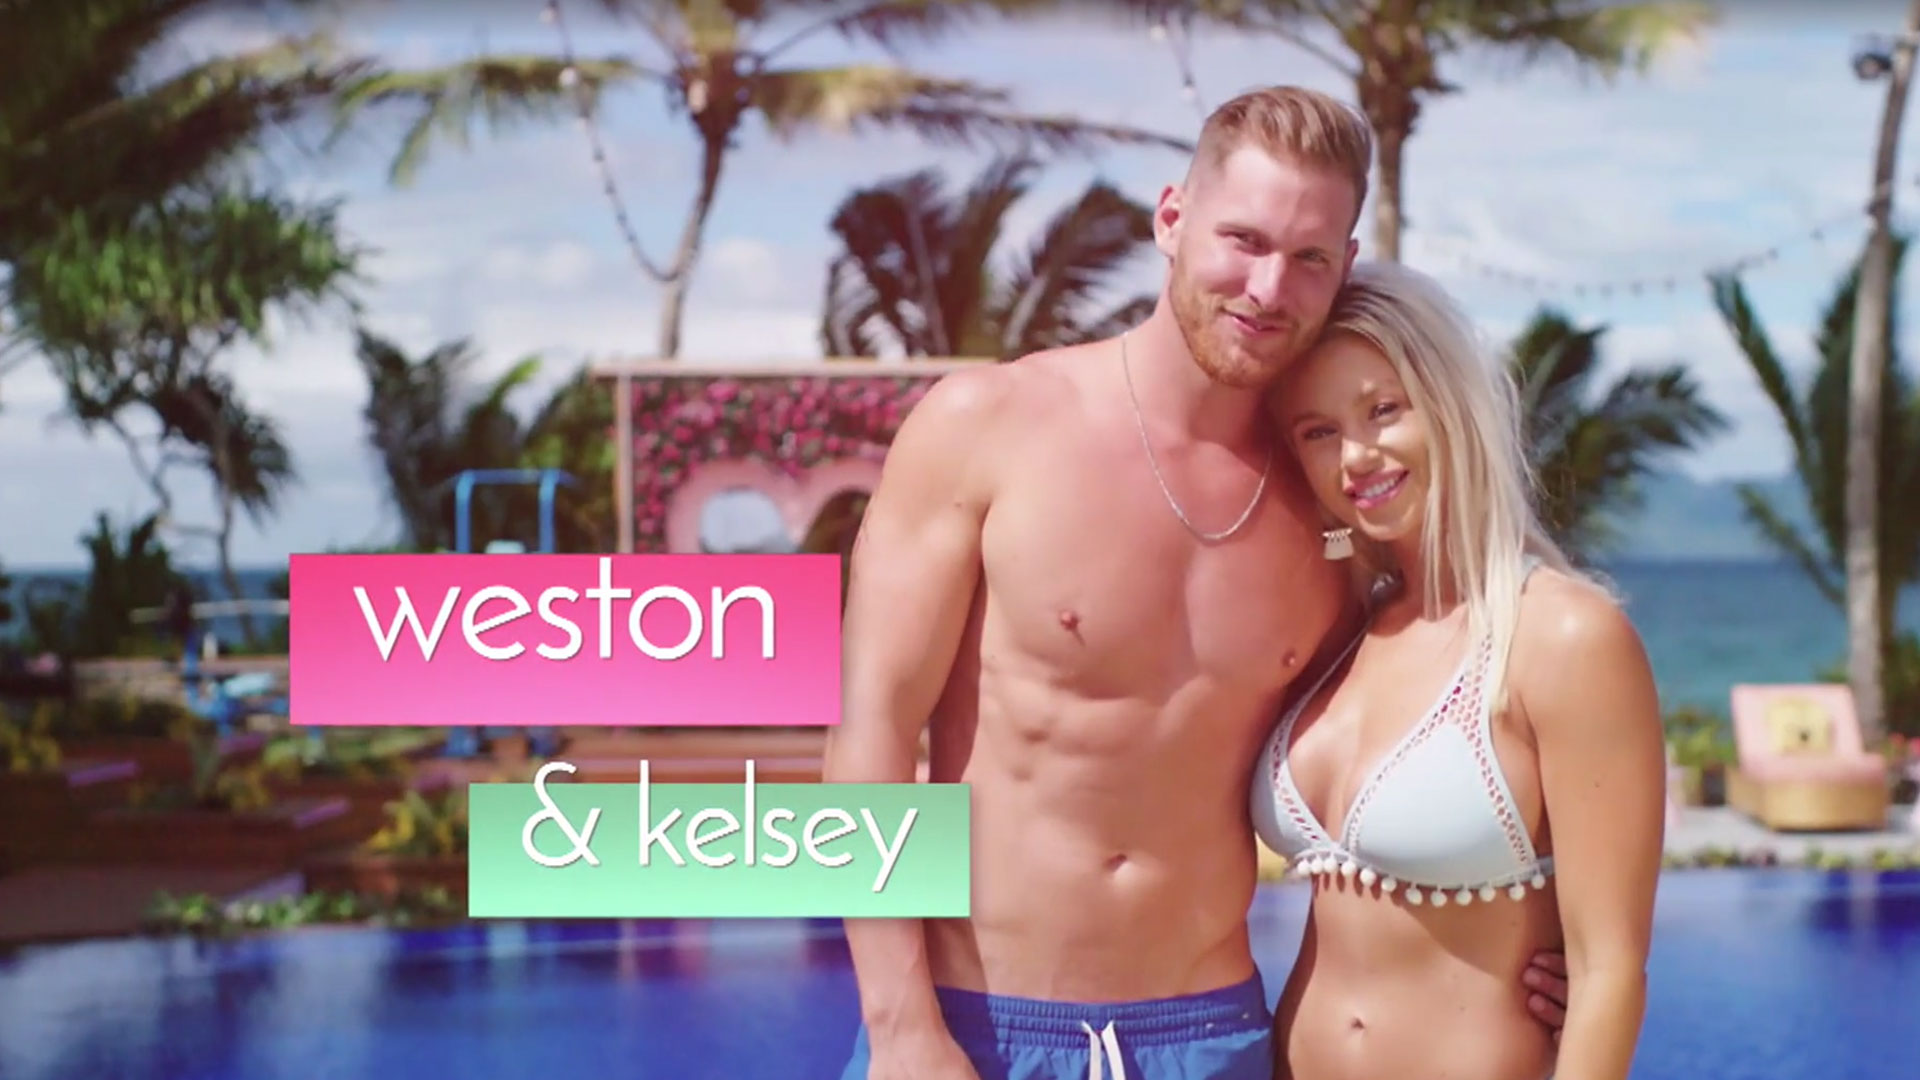 Weston and Kelsey